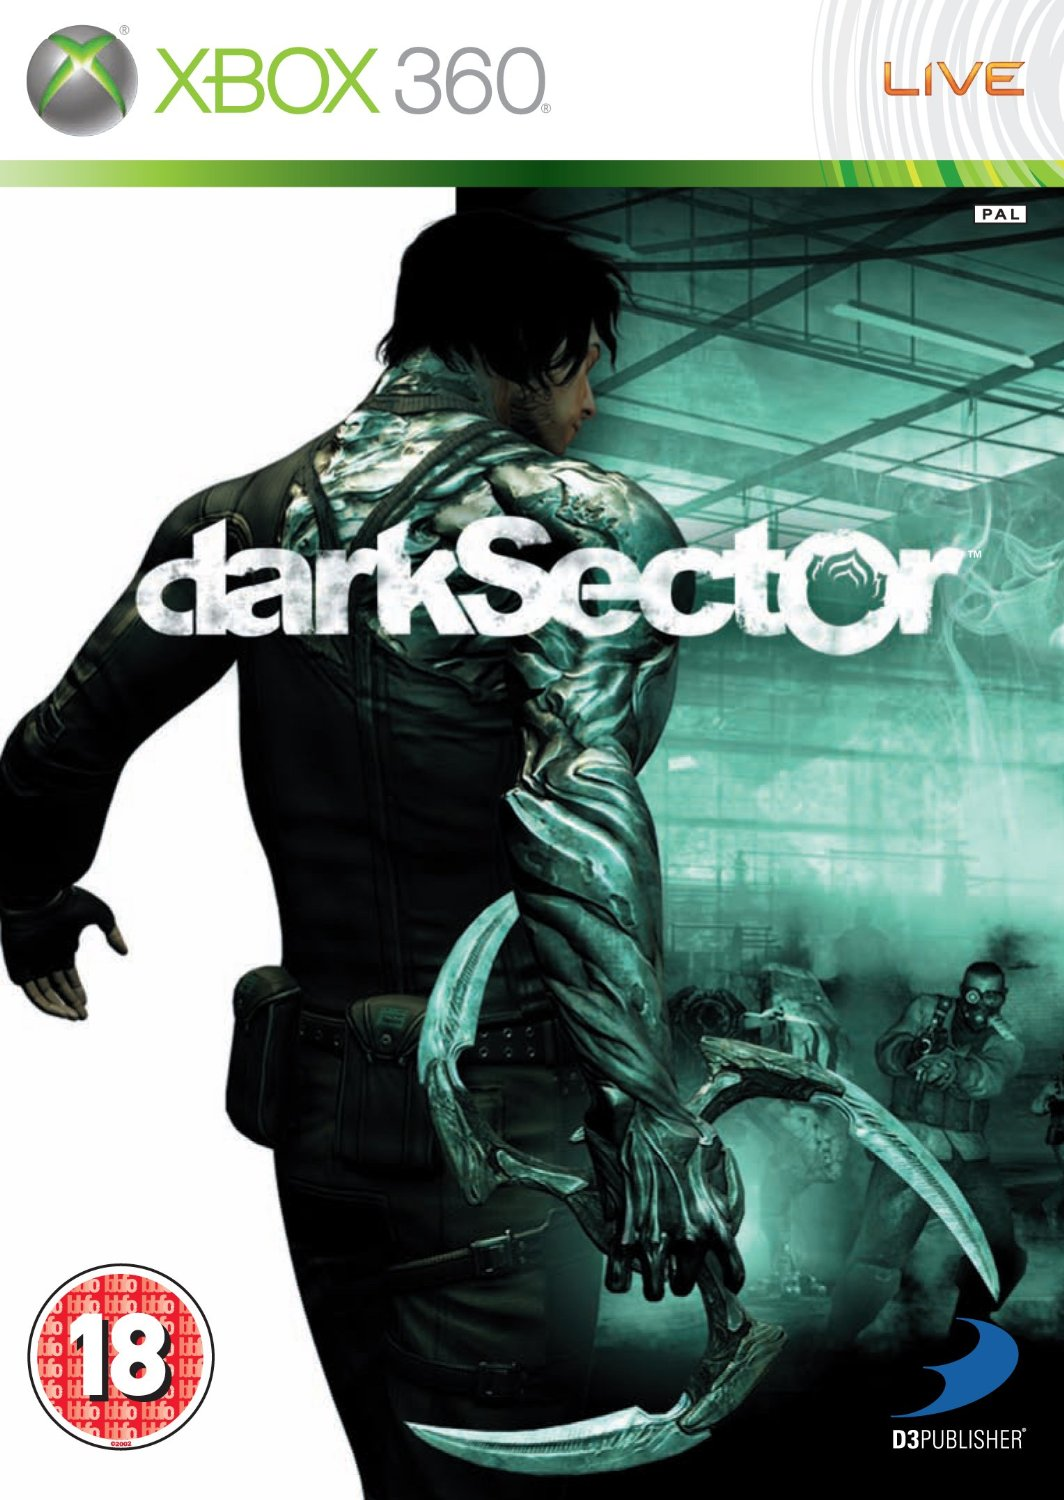 Dark Sector-Xbox 360                                                                                                                                   By:Digital Extremes                                   Eur:16.24 Ден:1299